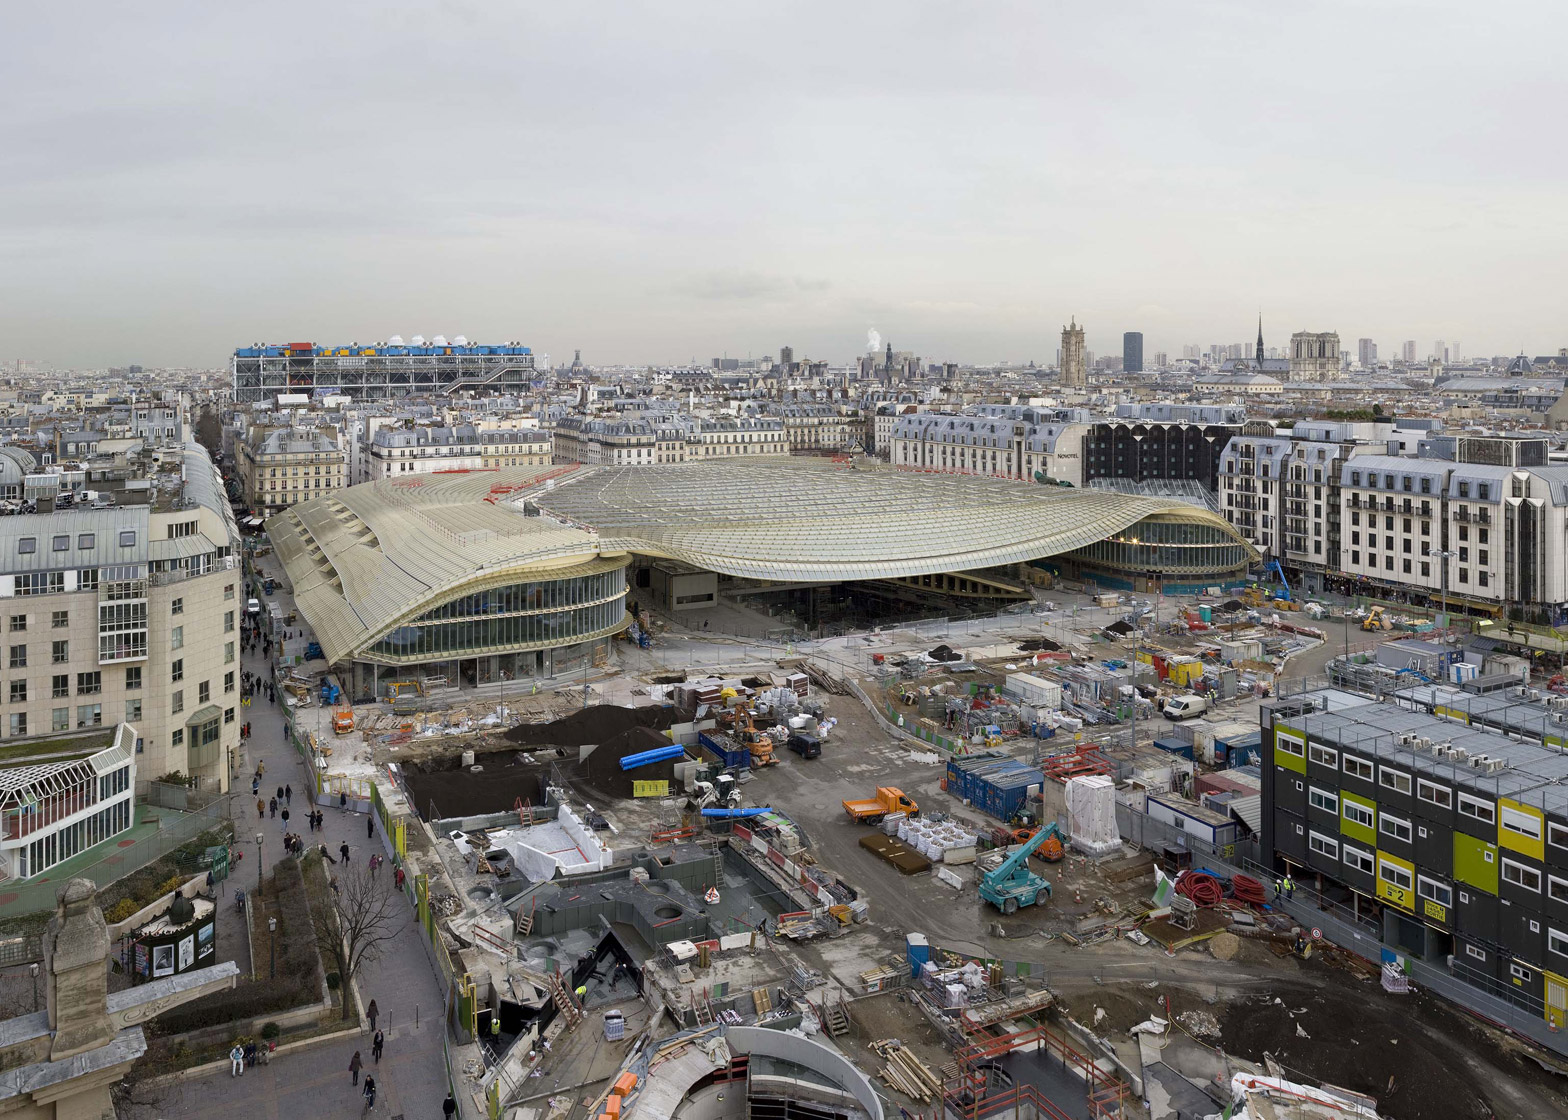 les halles to reopen as glass roofed